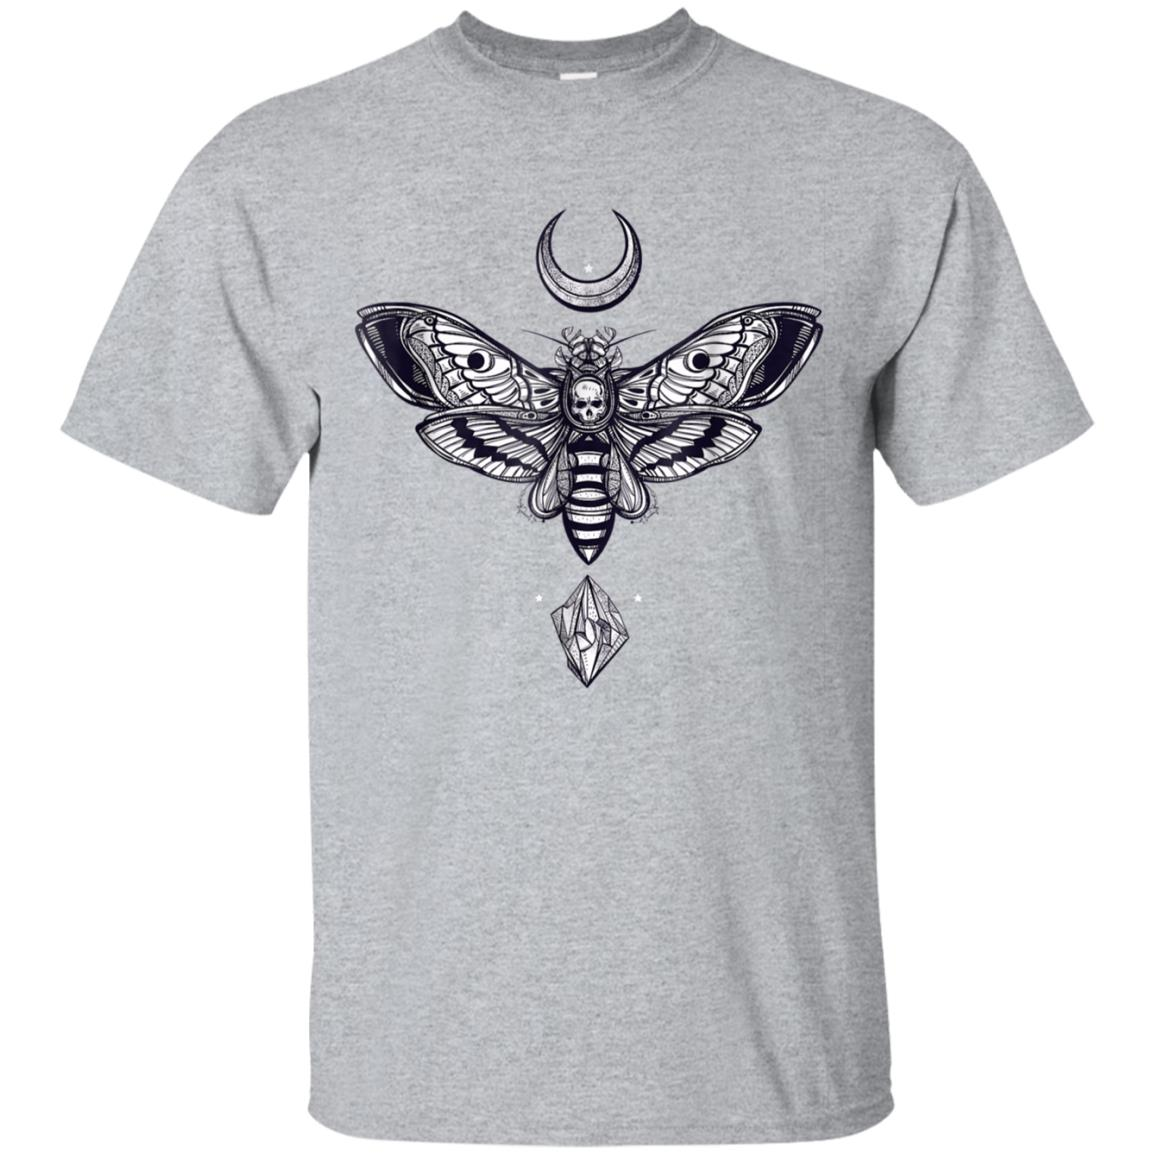 Crystal Moon and Death Moth Tshirt - Mystic Pagan Skeleton 99promocode